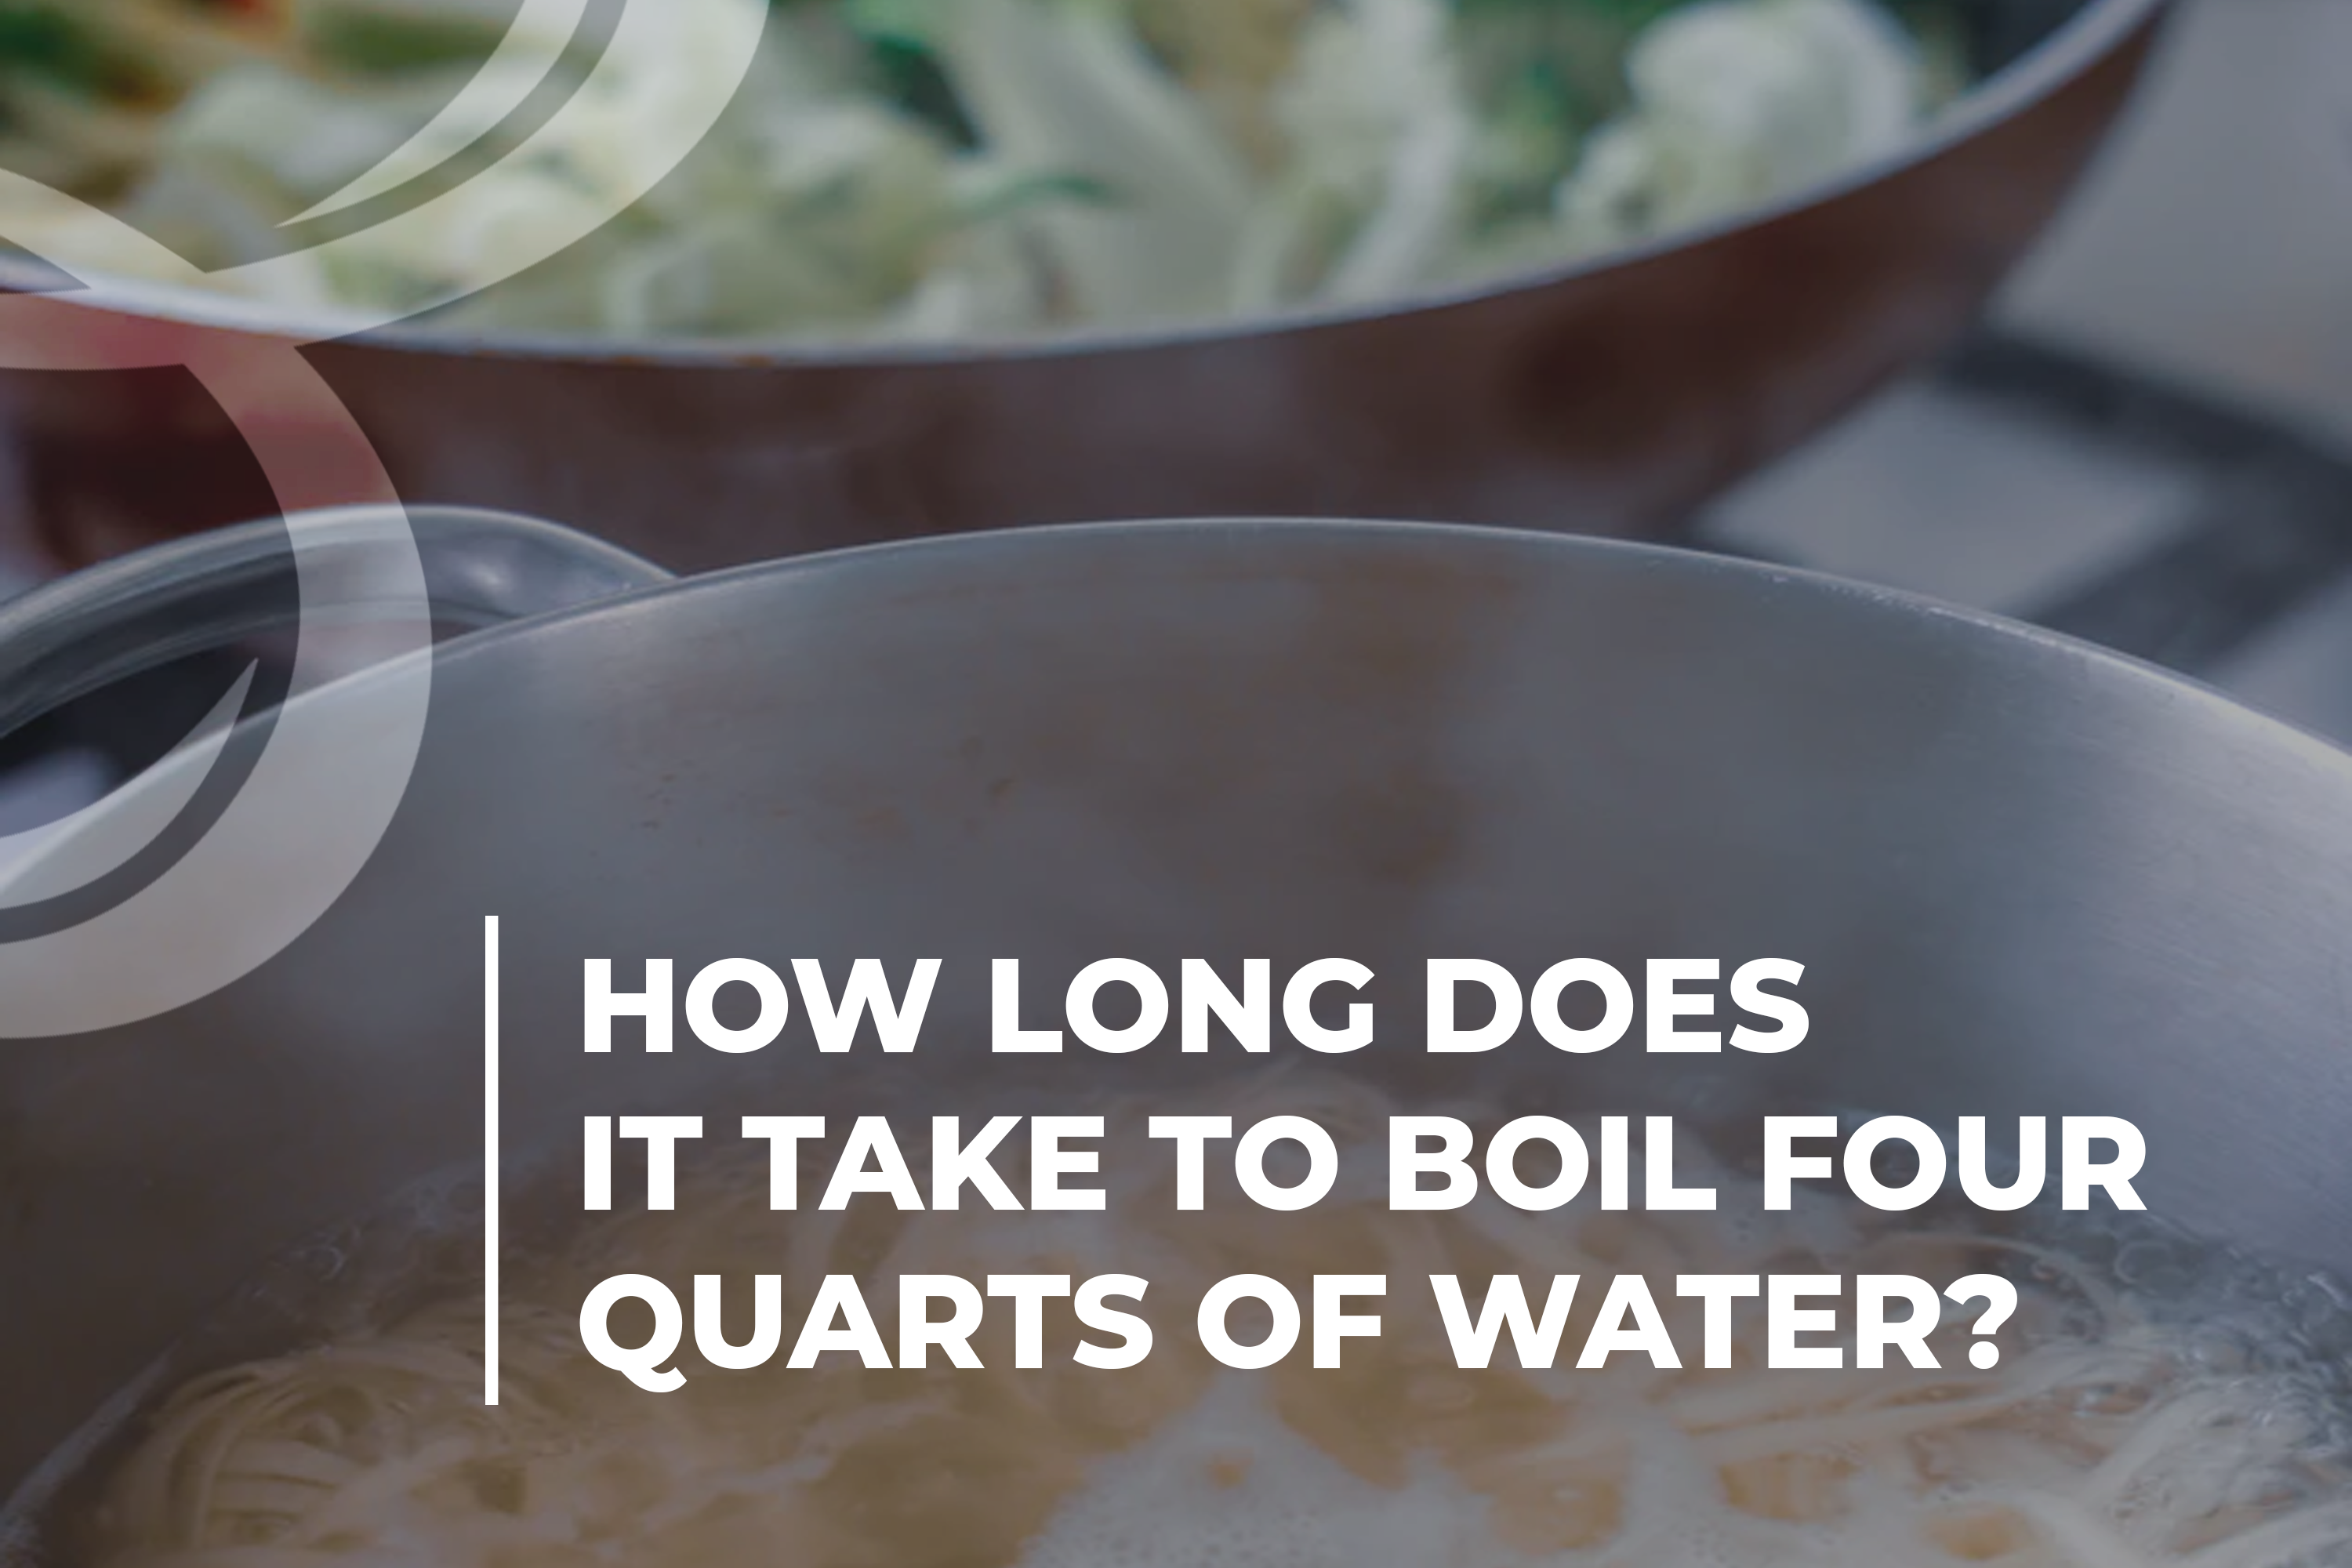 How long does it take to boil four quarts of water